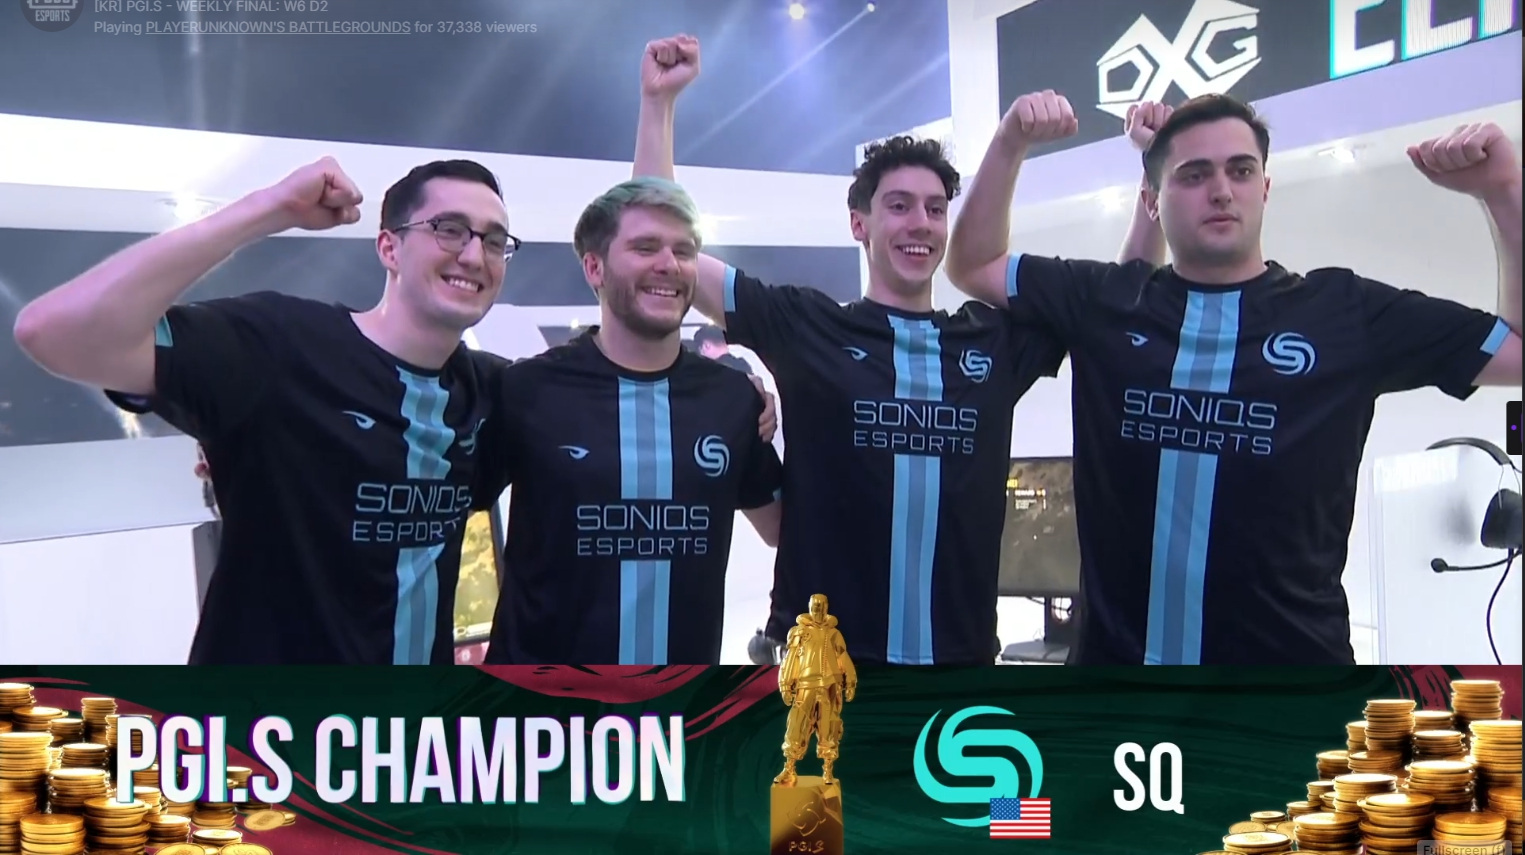 Soniqs Esports players celebrating after the final win in the PGI.S 2021